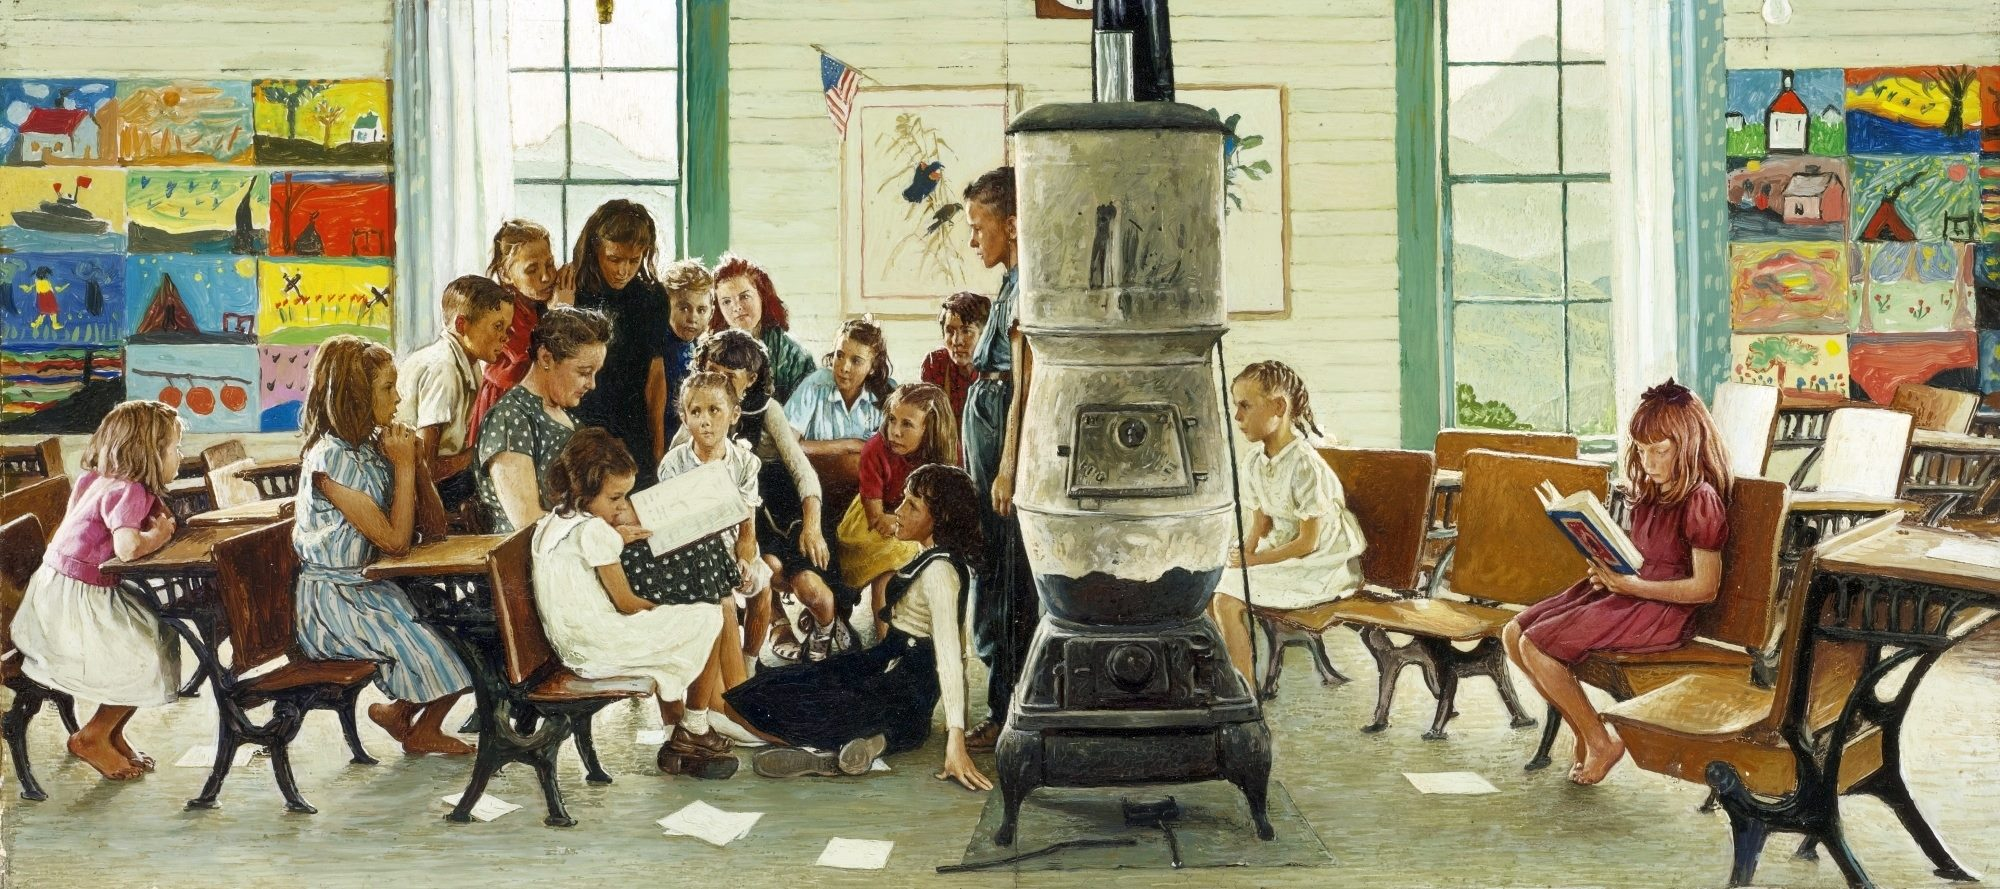 Visions Of History 1 Norman Rockwell A Vision Of